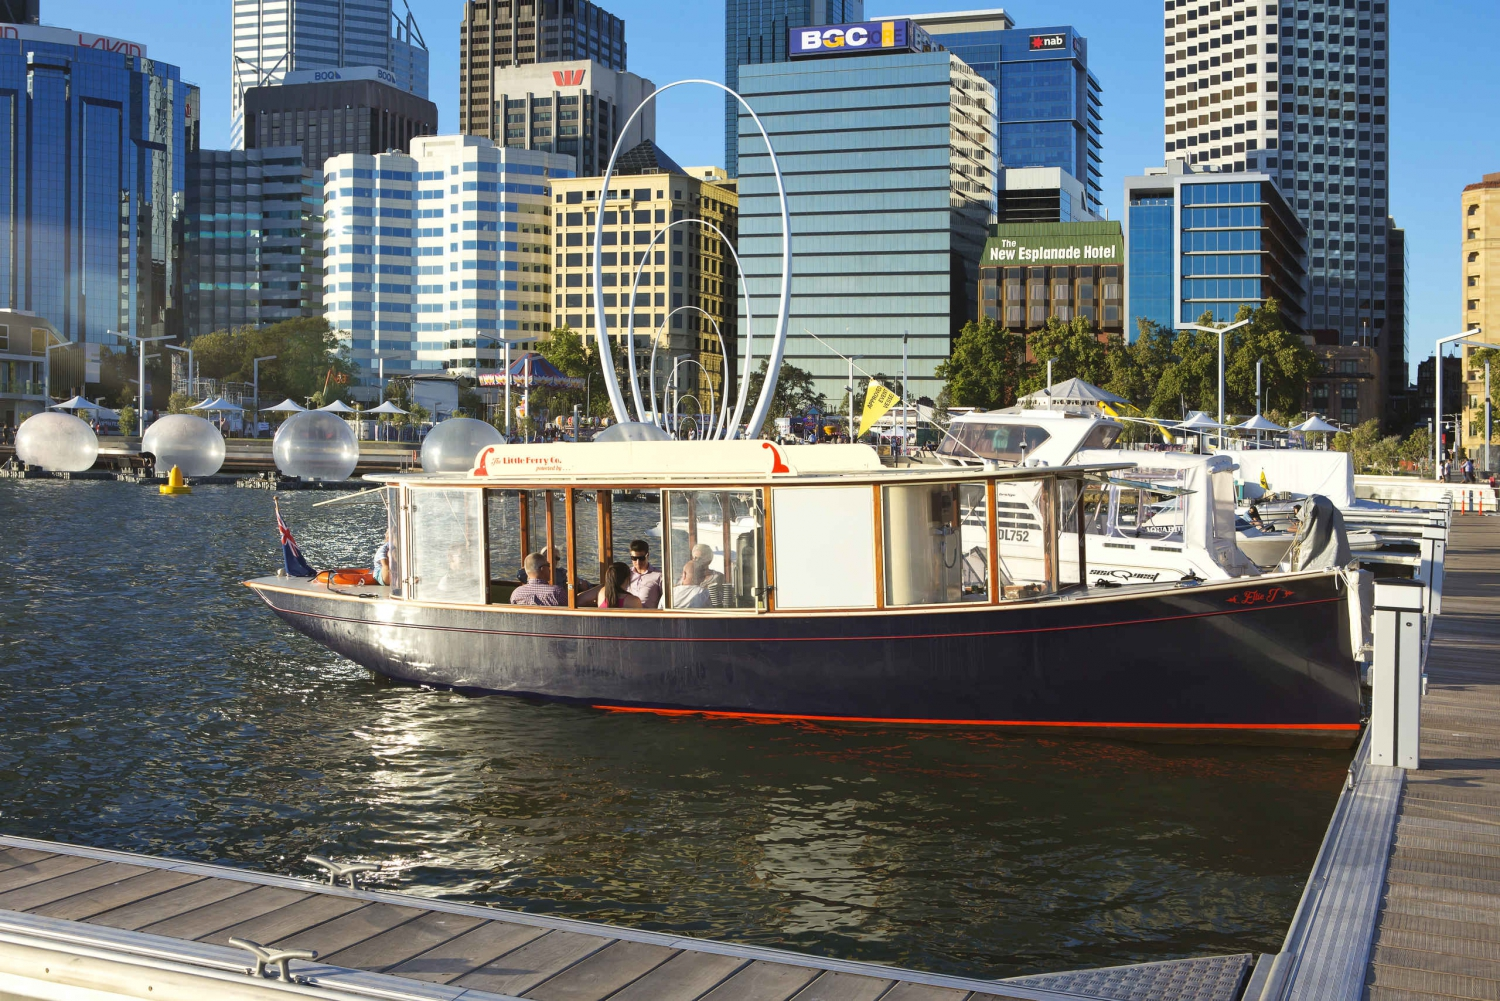 Swan River Boutique Ferry Cruise from Perth